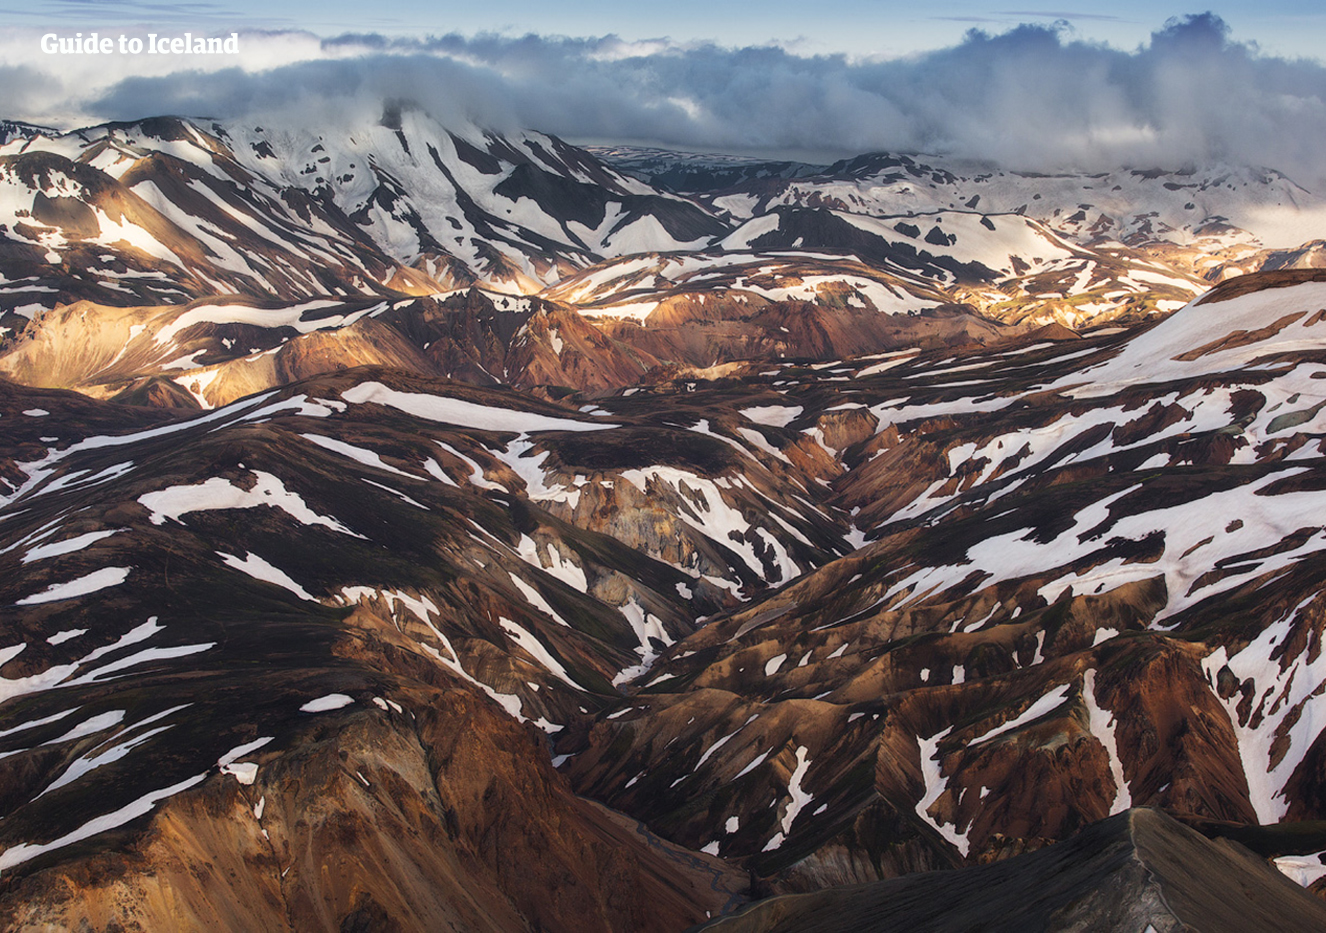 An aerial view of snow-coated mountains in the highlands of Iceland.